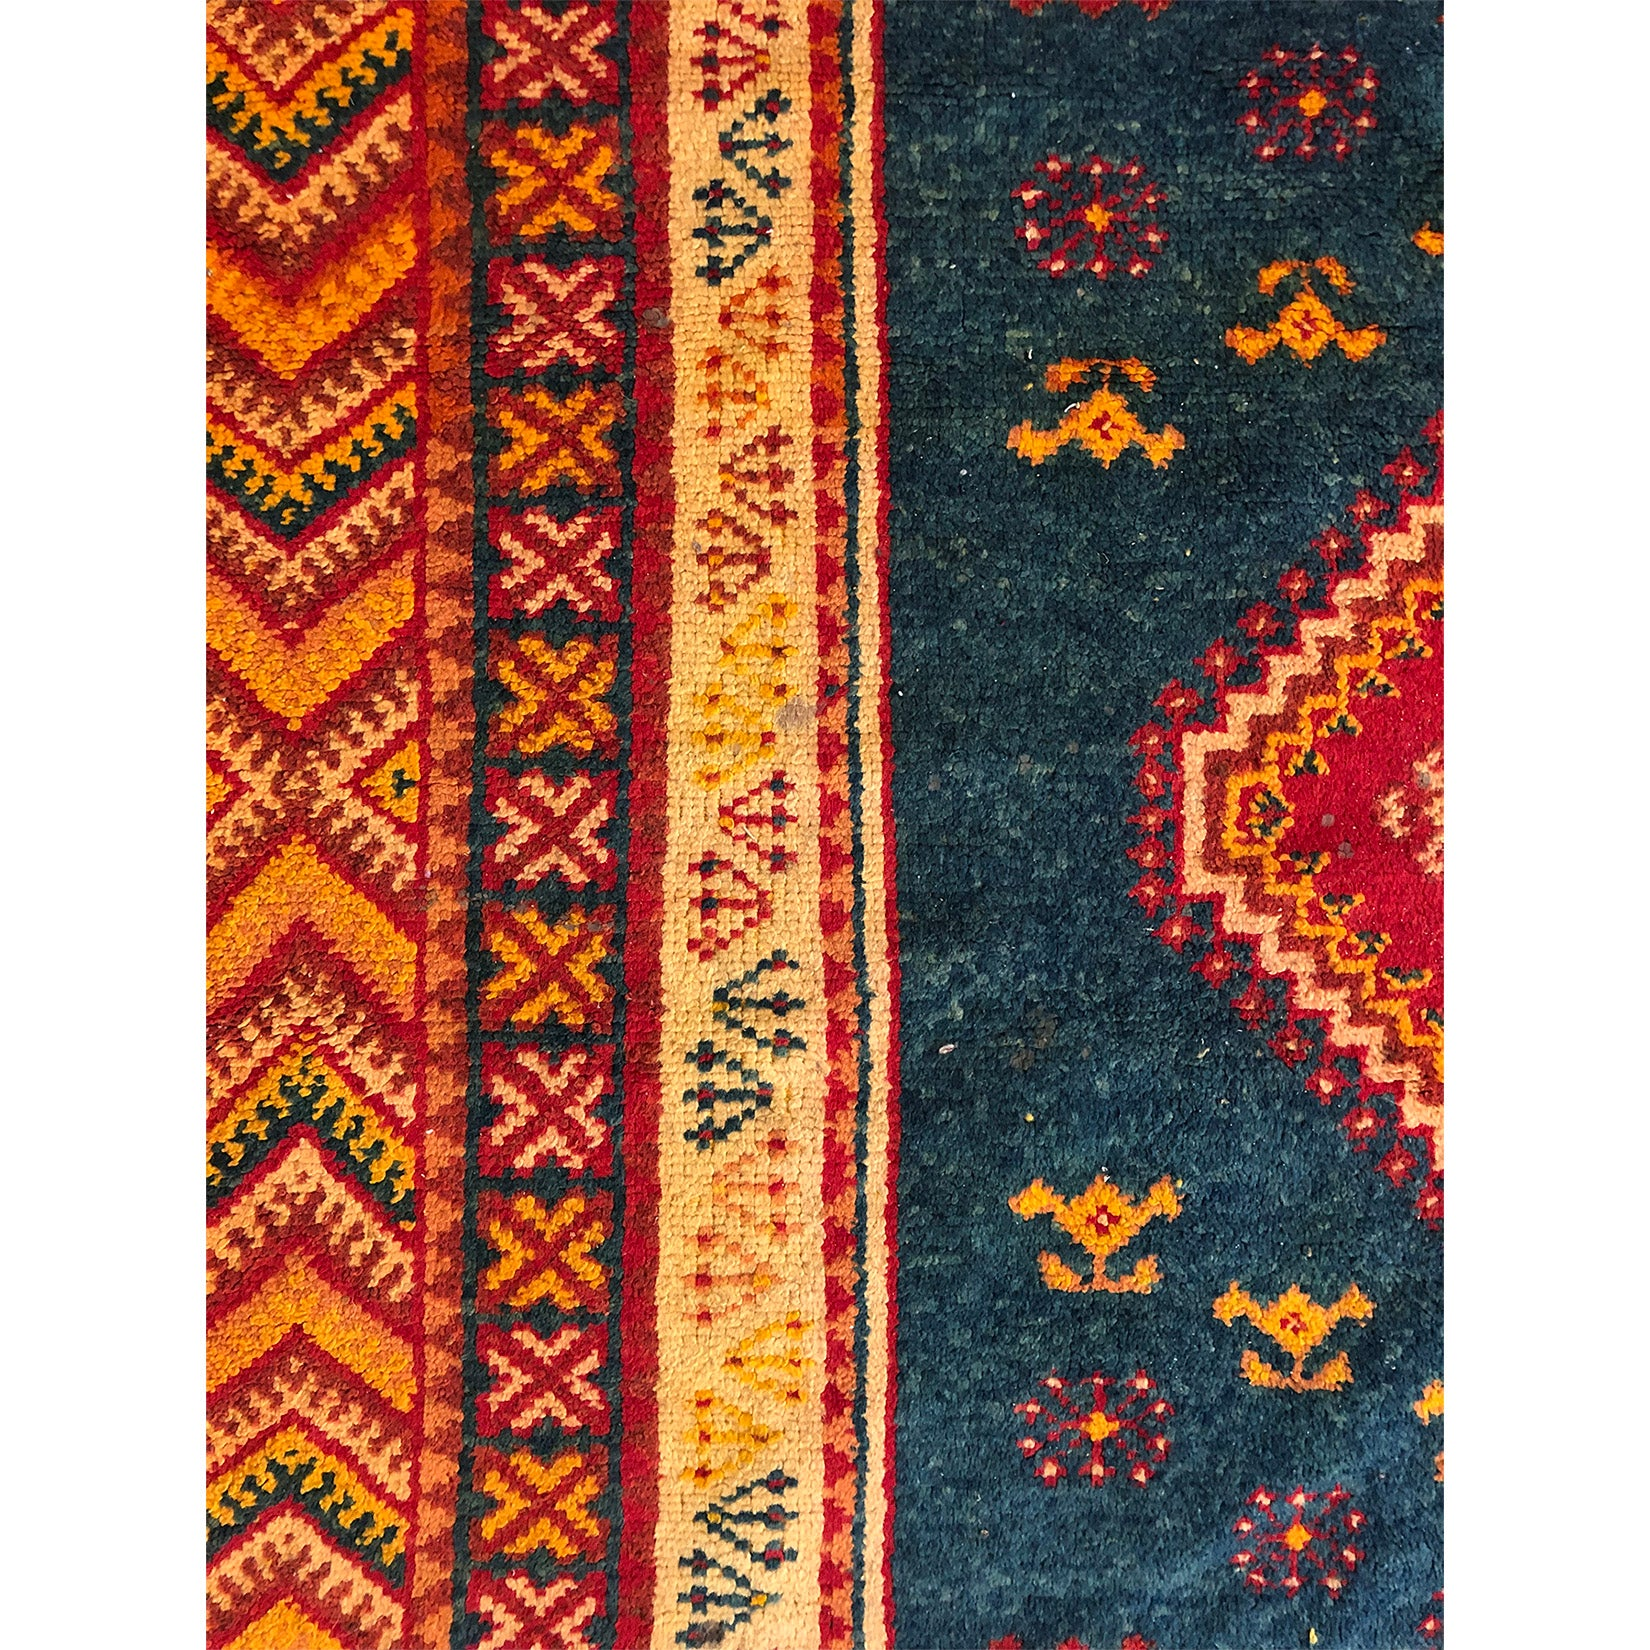 Authentic rust colored Moroccan tribal rug - Kantara | Moroccan Rugs